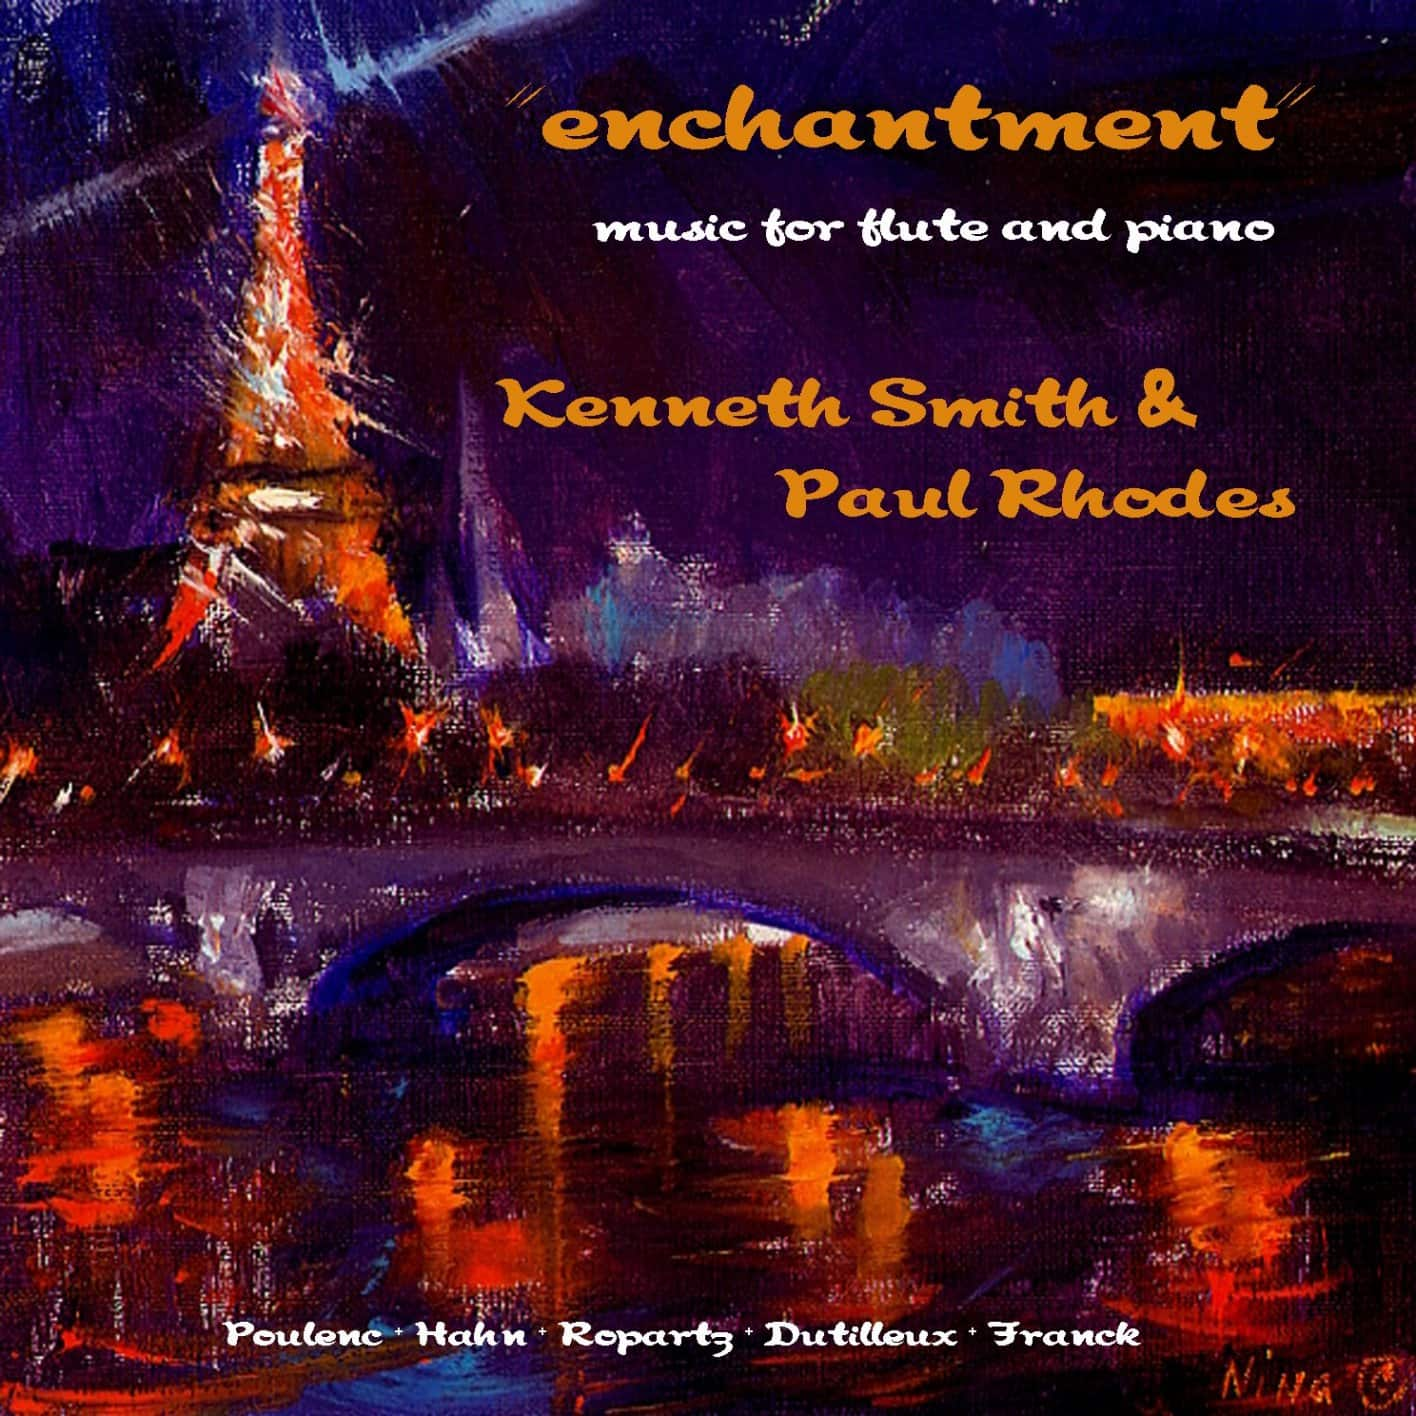 Enchantment - music for flute and piano